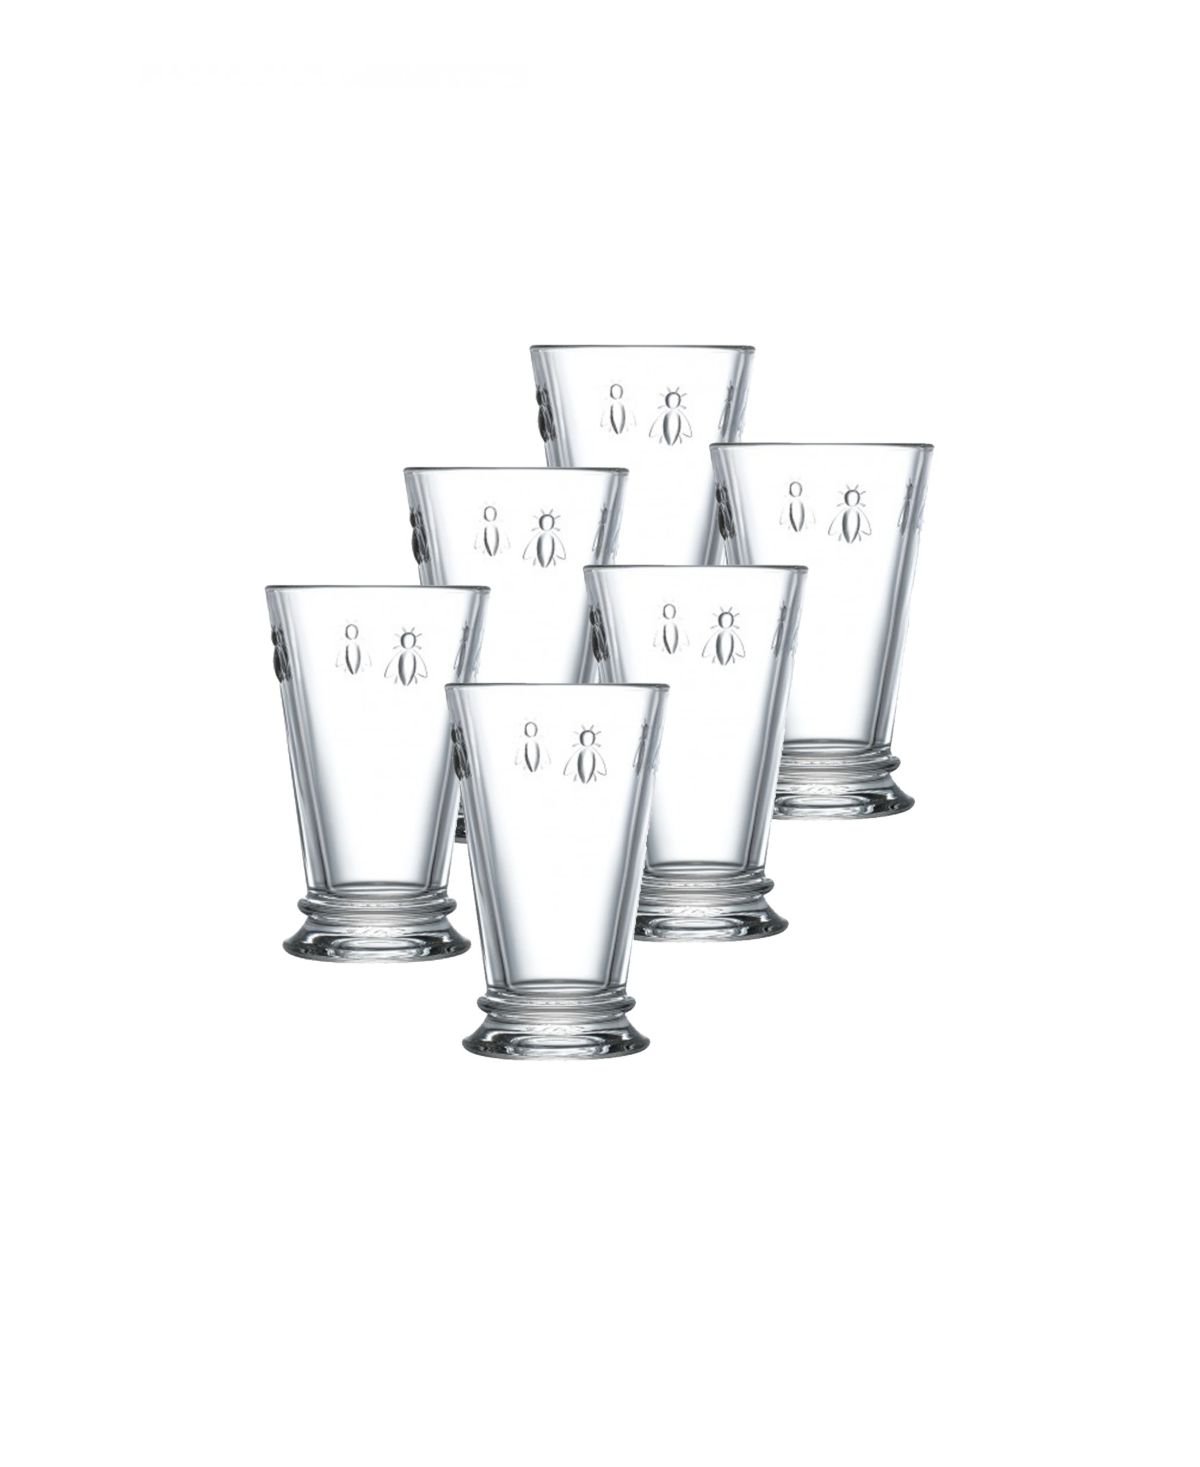 Made by the oldest glass factory in Europe, la Rochere, Napoleonic Bee highball glasses feature exceptionally clear and heavy glass produced in turn-of-the-century molds with traditional seams. A charming bee motif recalls Napoleon's coronation luggage.